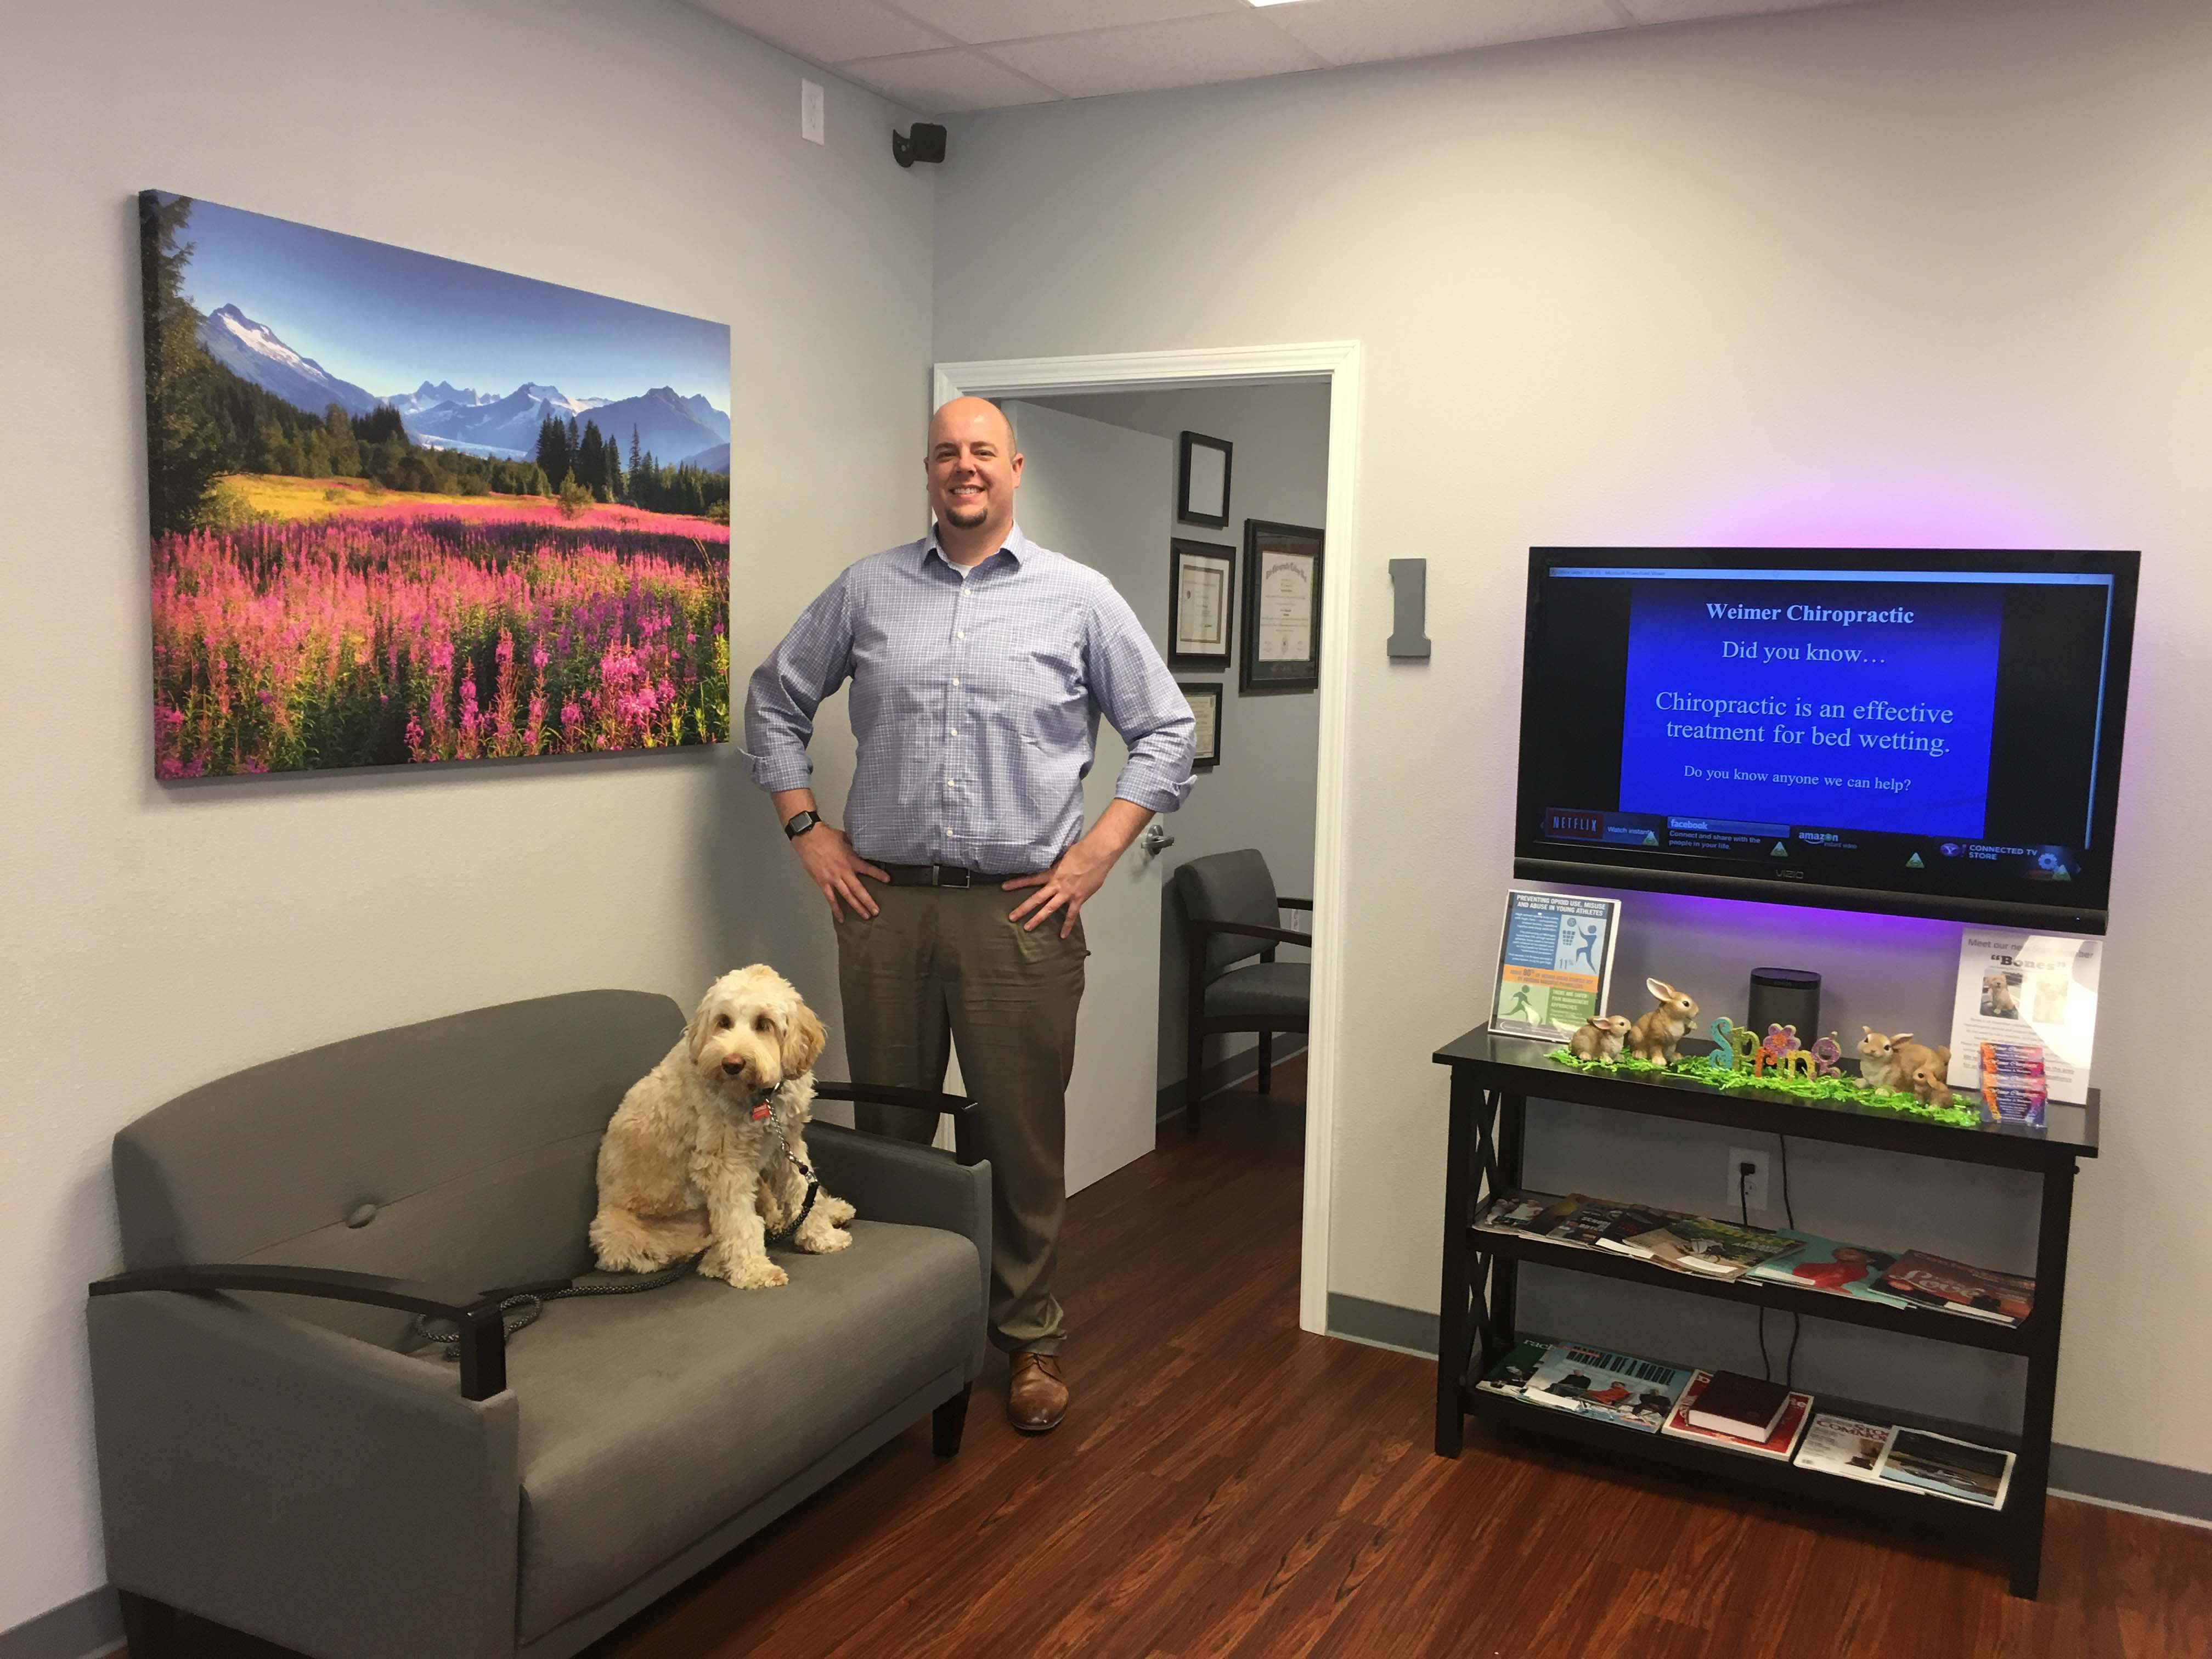 Dr. Weimer is our Senior Chiropractor.  Bones is our service dog,